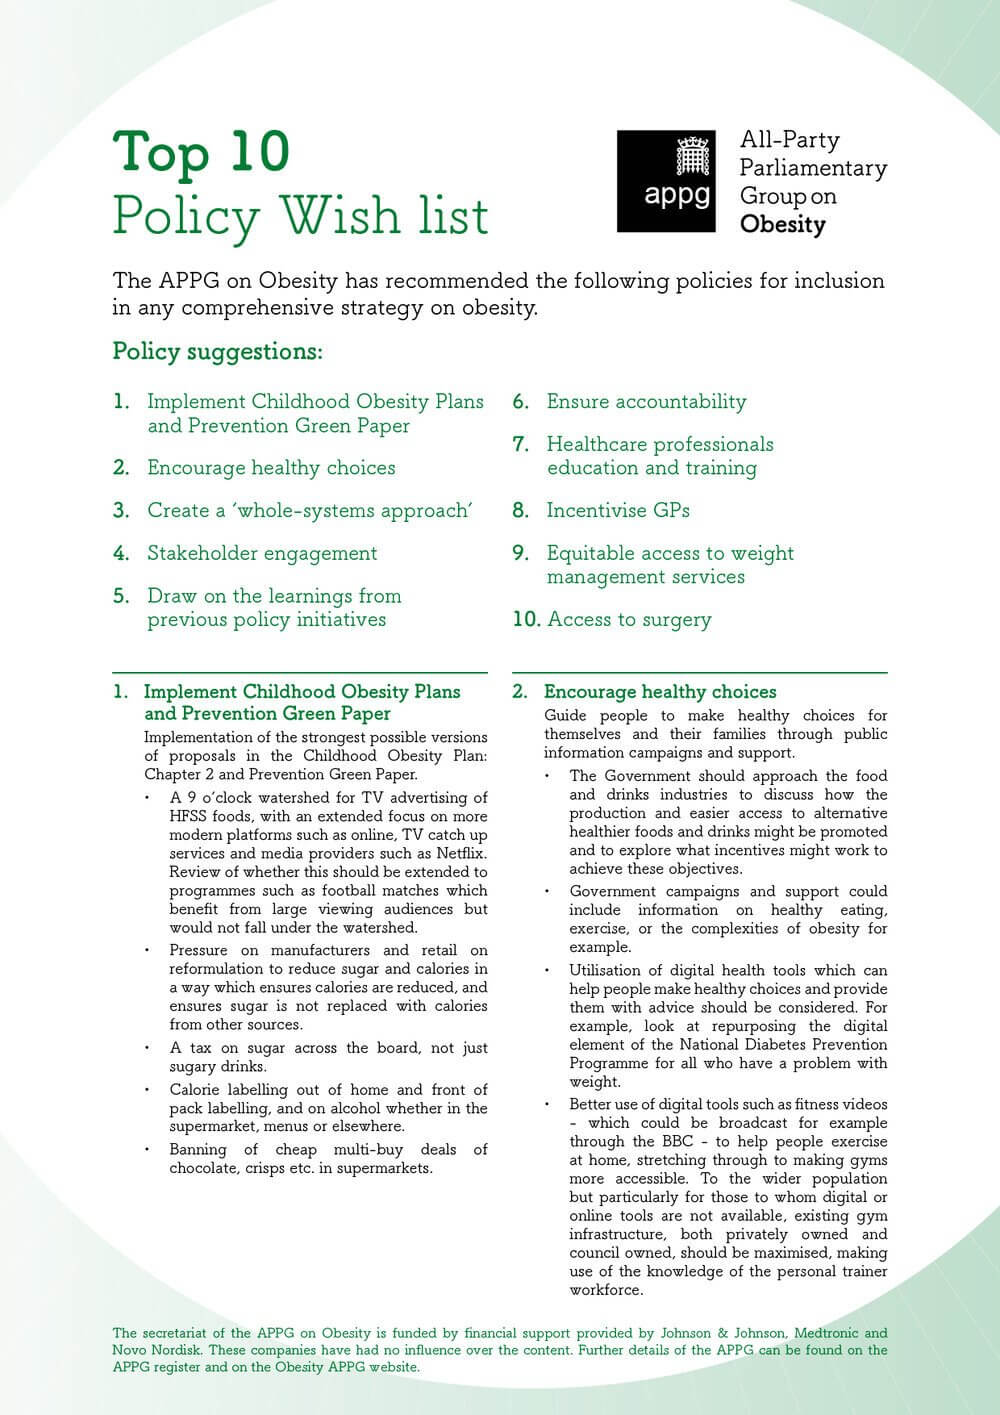 THE APPG ON OBESITY'S TOP TEN POLICY WISH LIST